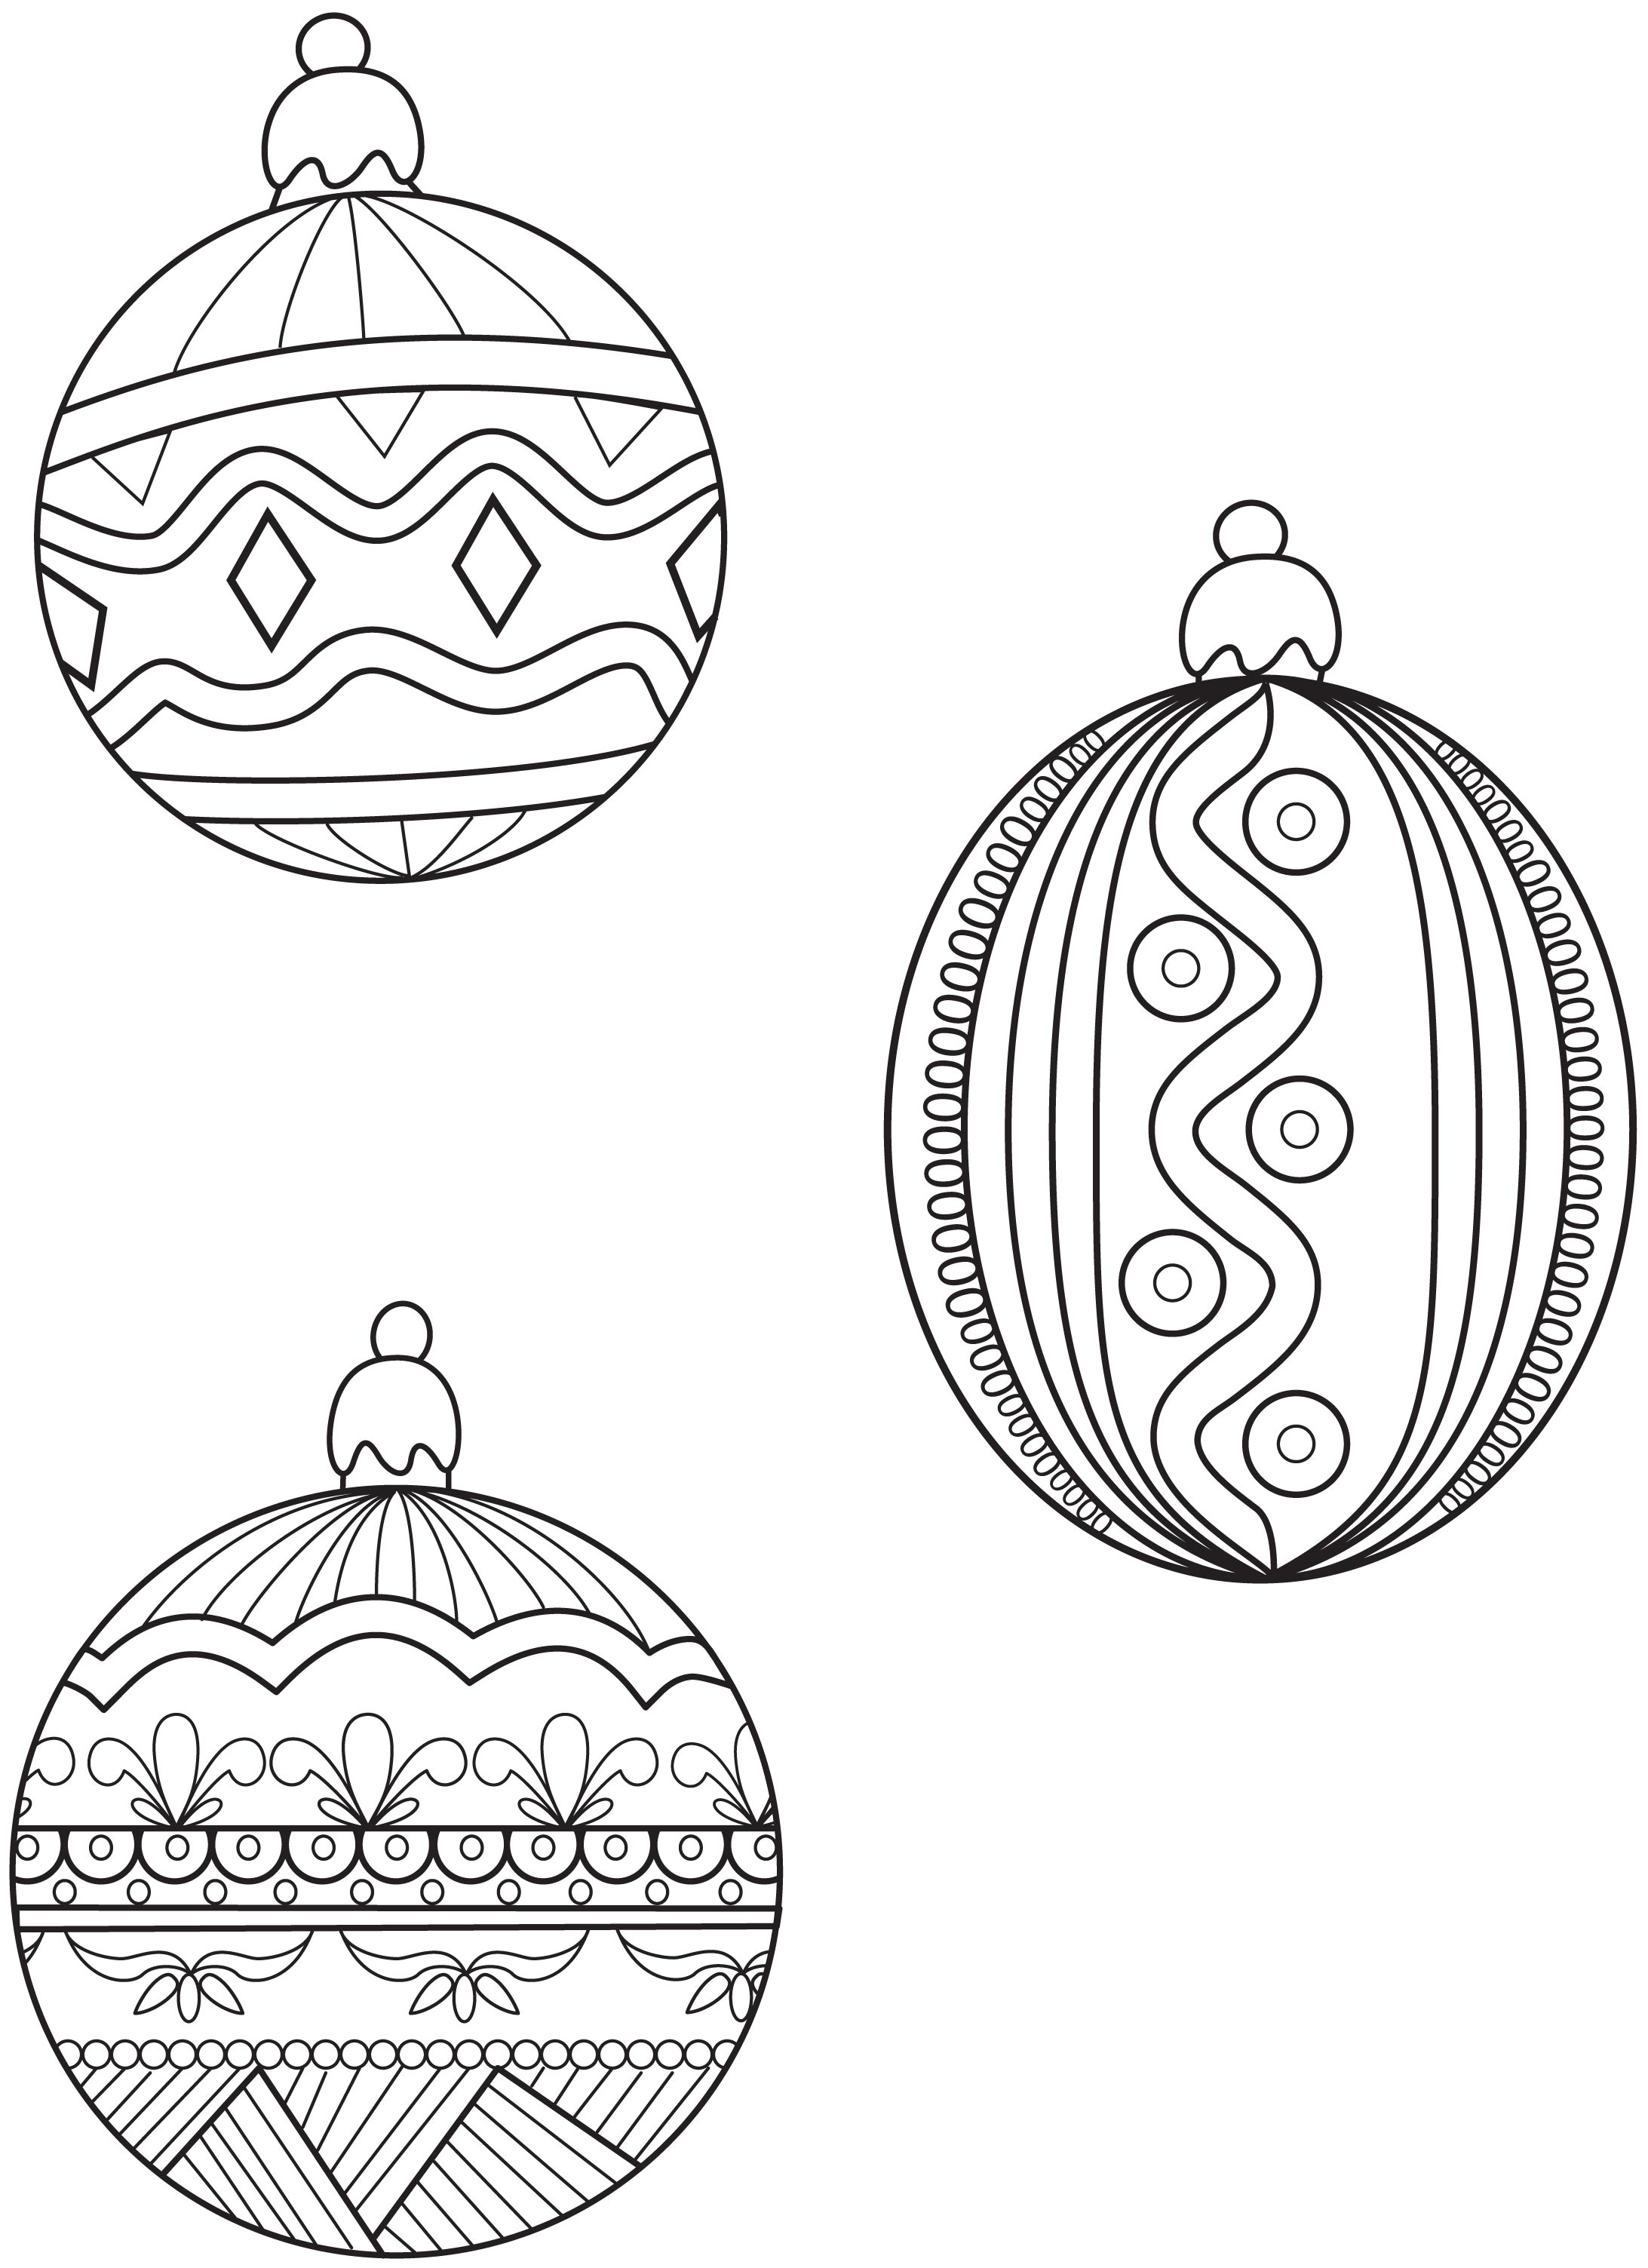 Ornament coloring pages to download